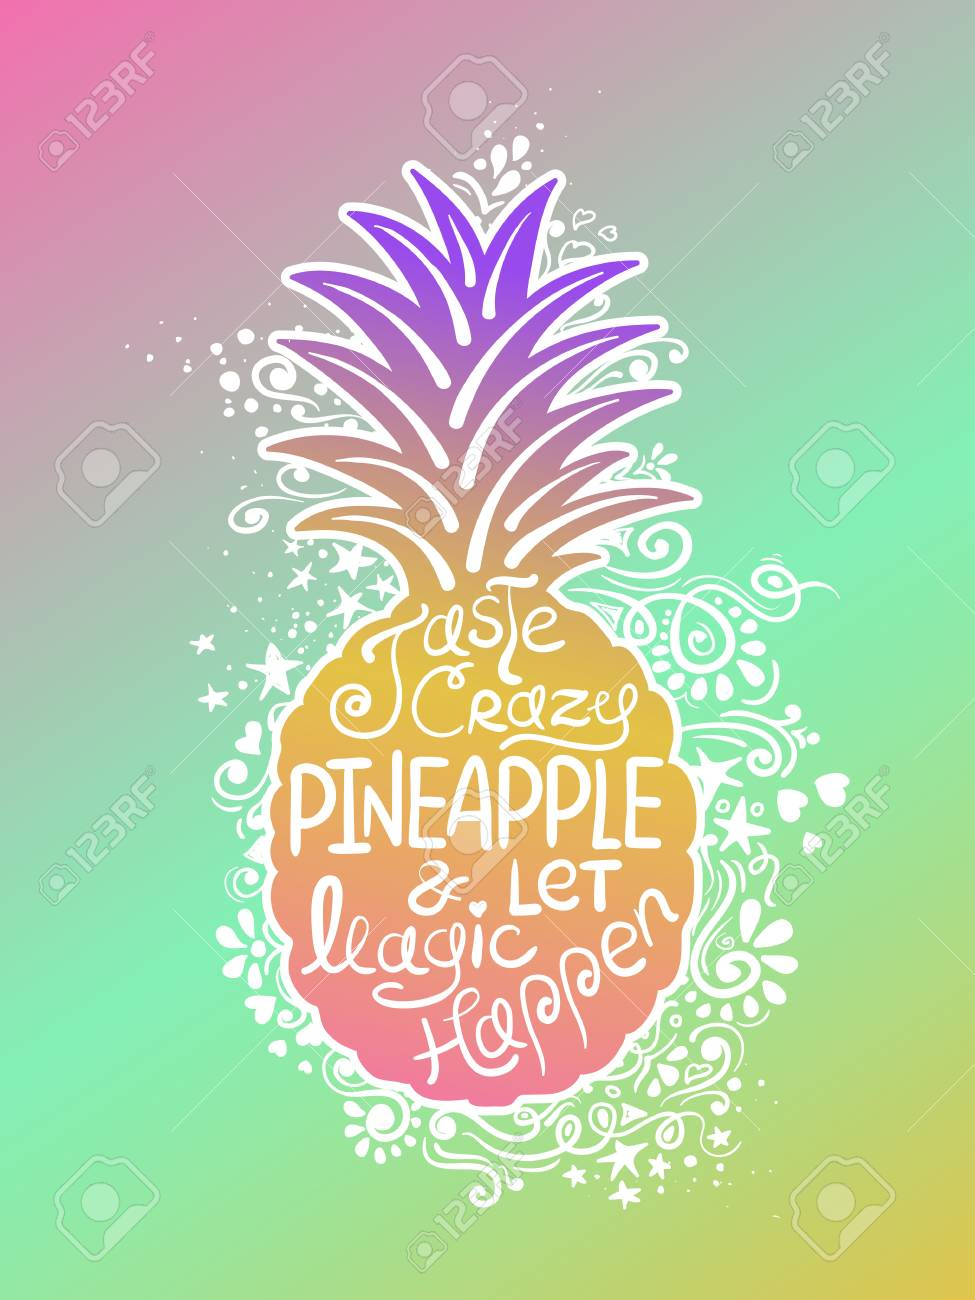 Illustration Of Pineapple Silhouette With Pattern And Hand Drawn Lettering Creative Typography Poster Phrase